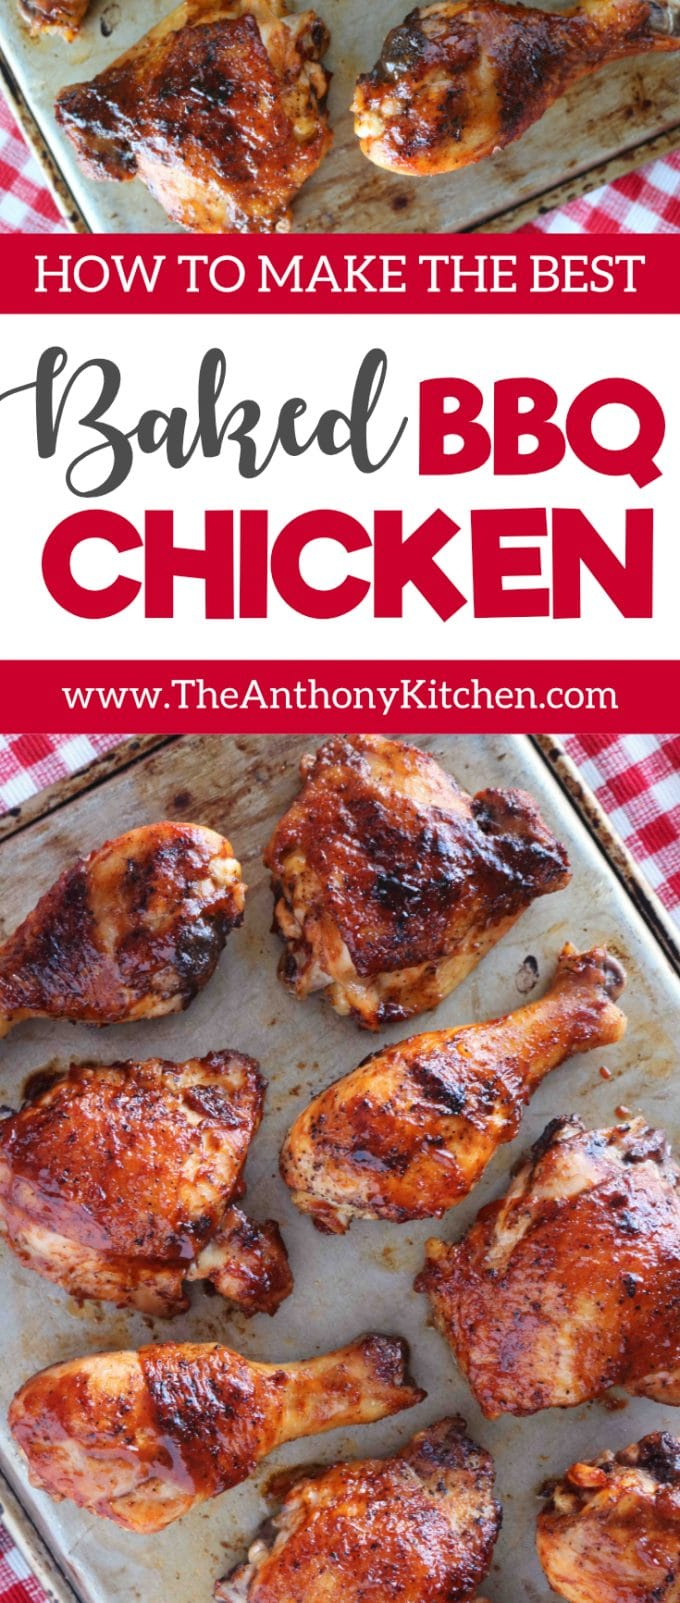 BEST BAKED BBQ CHICKEN